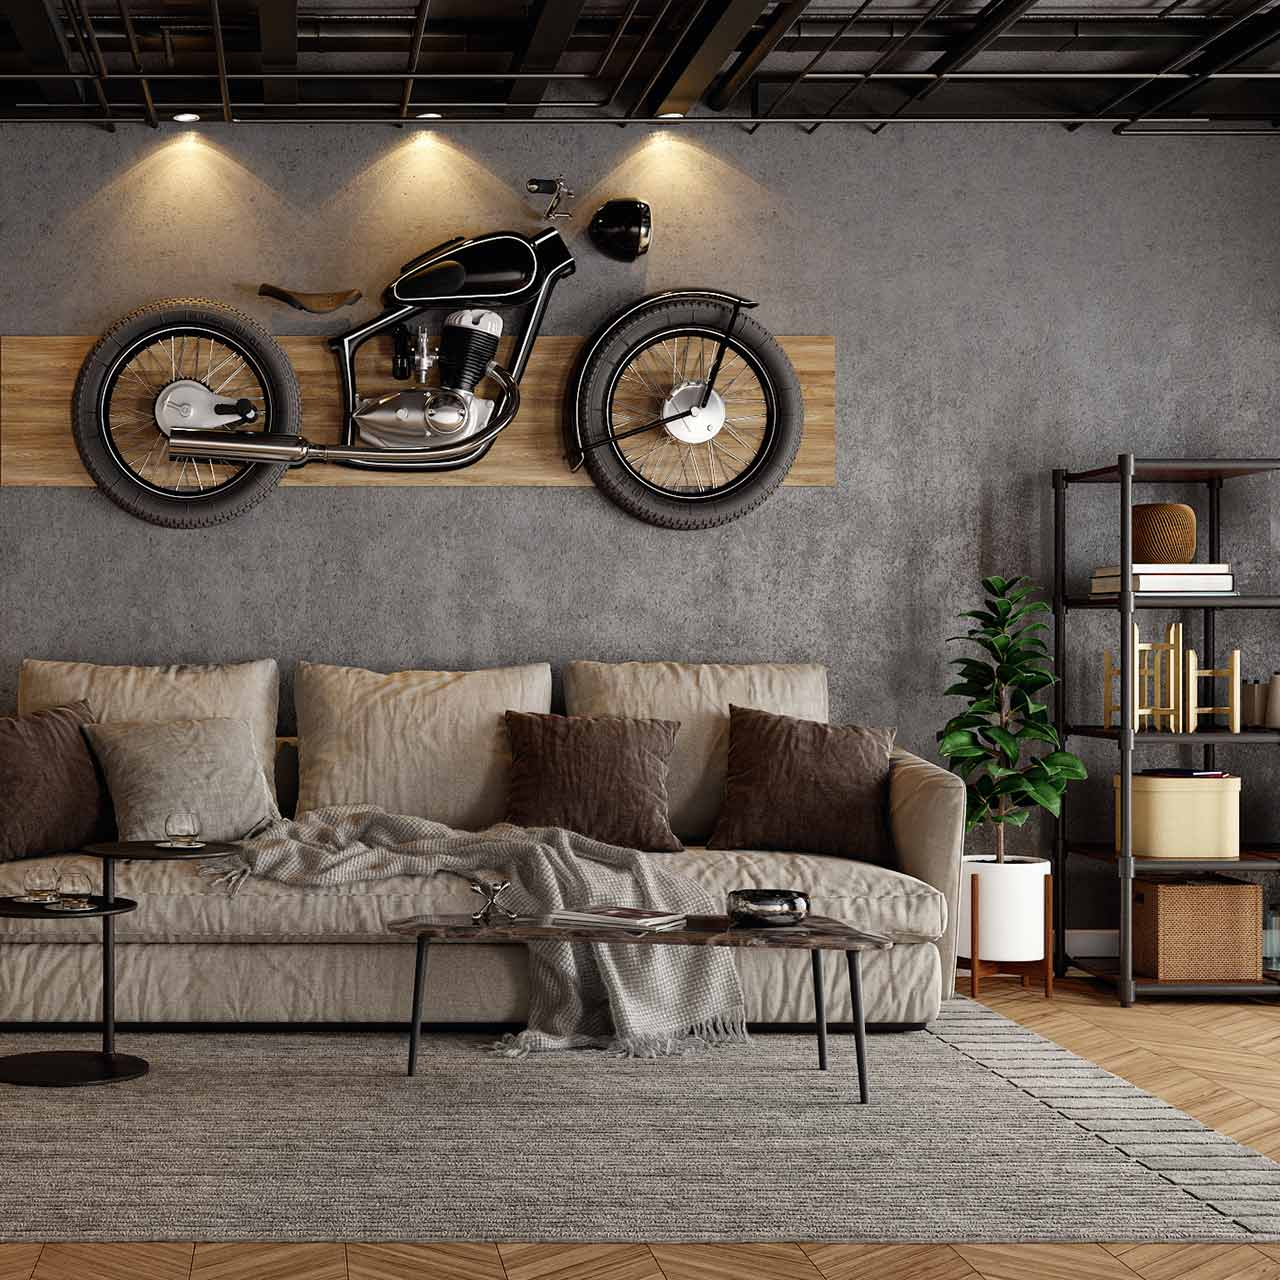 Living room needs a focal point to capture attention